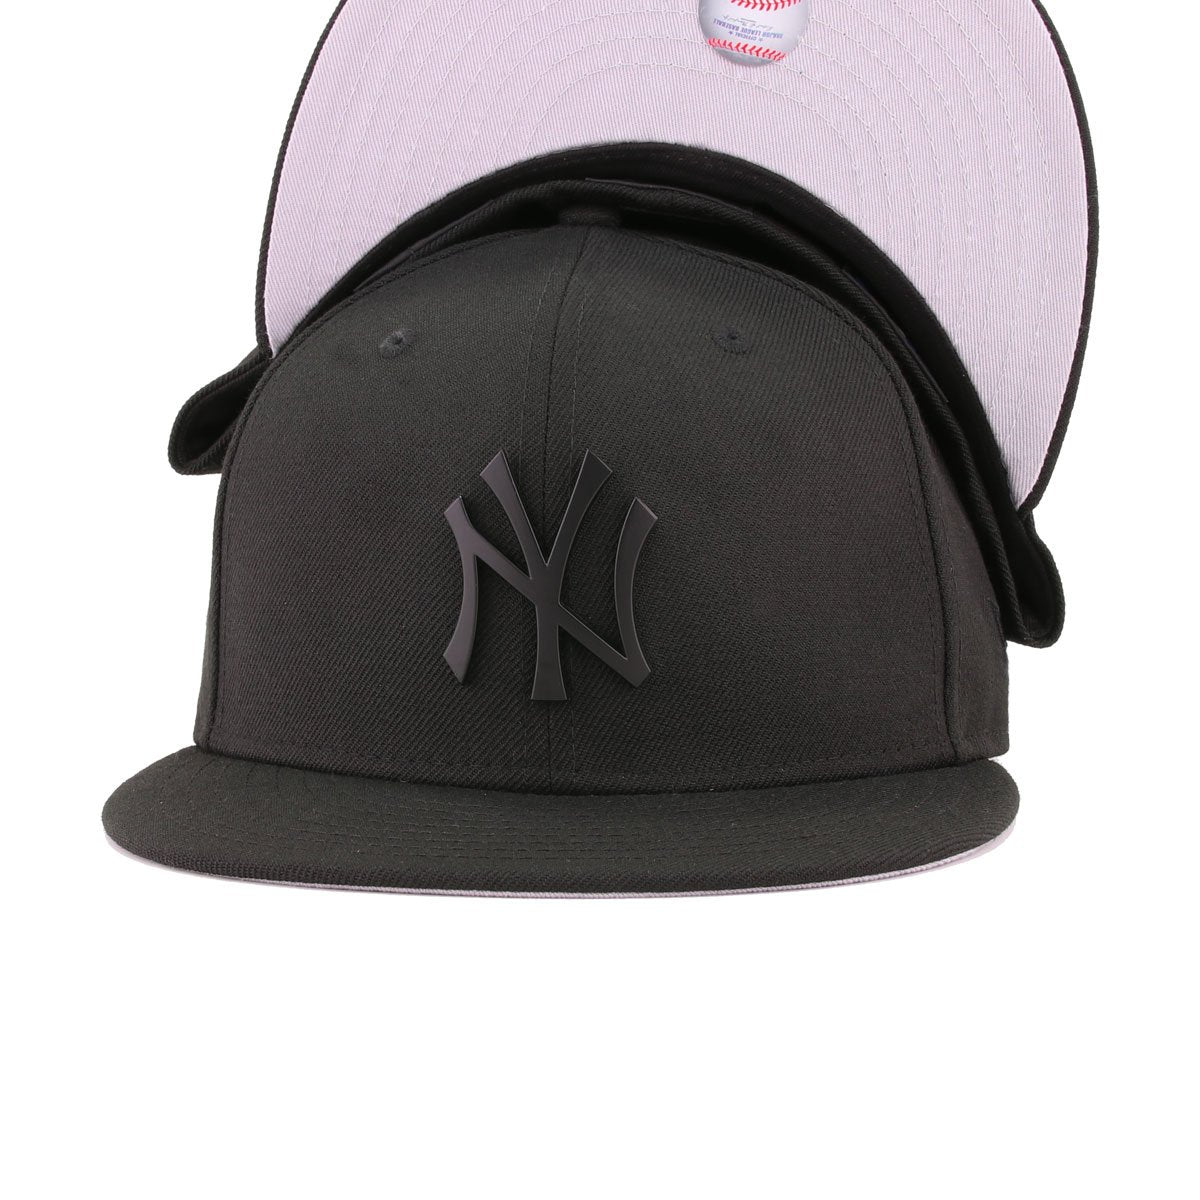 New York Yankees Black Black Metal Badge New Era 59Fifty Fitted